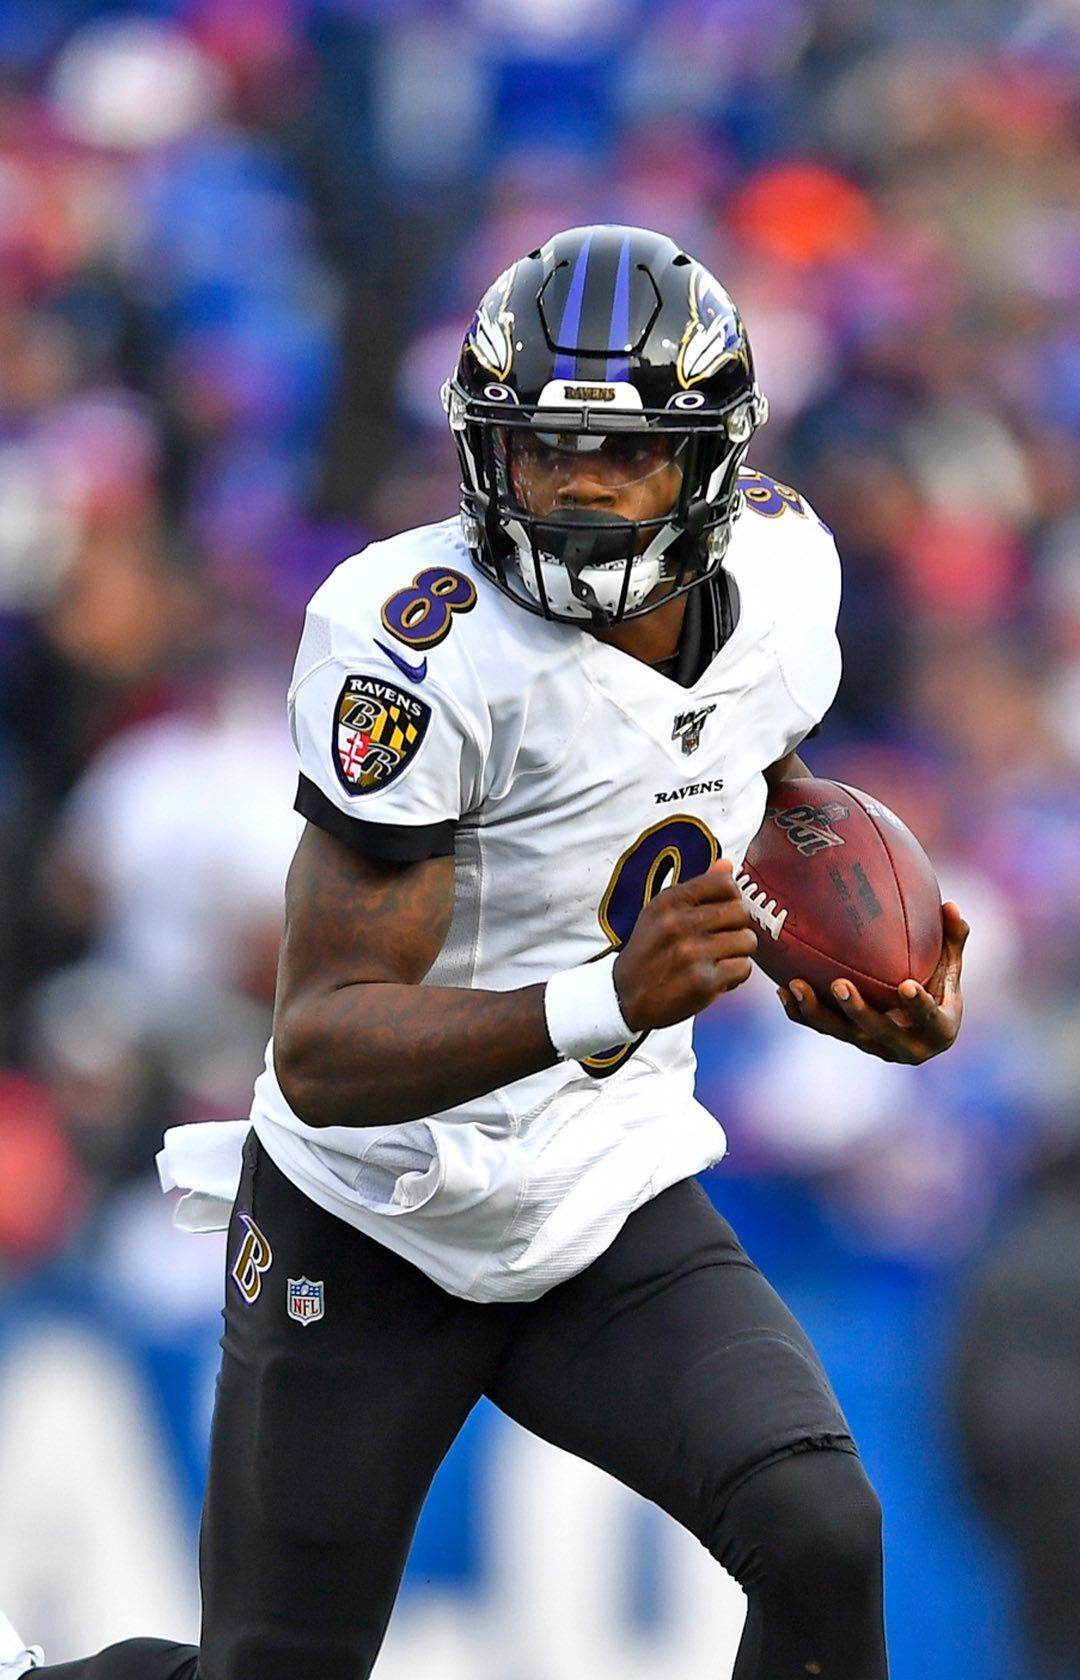 NFL in 2020 Nfl football players, Lamar jackson, Lamar